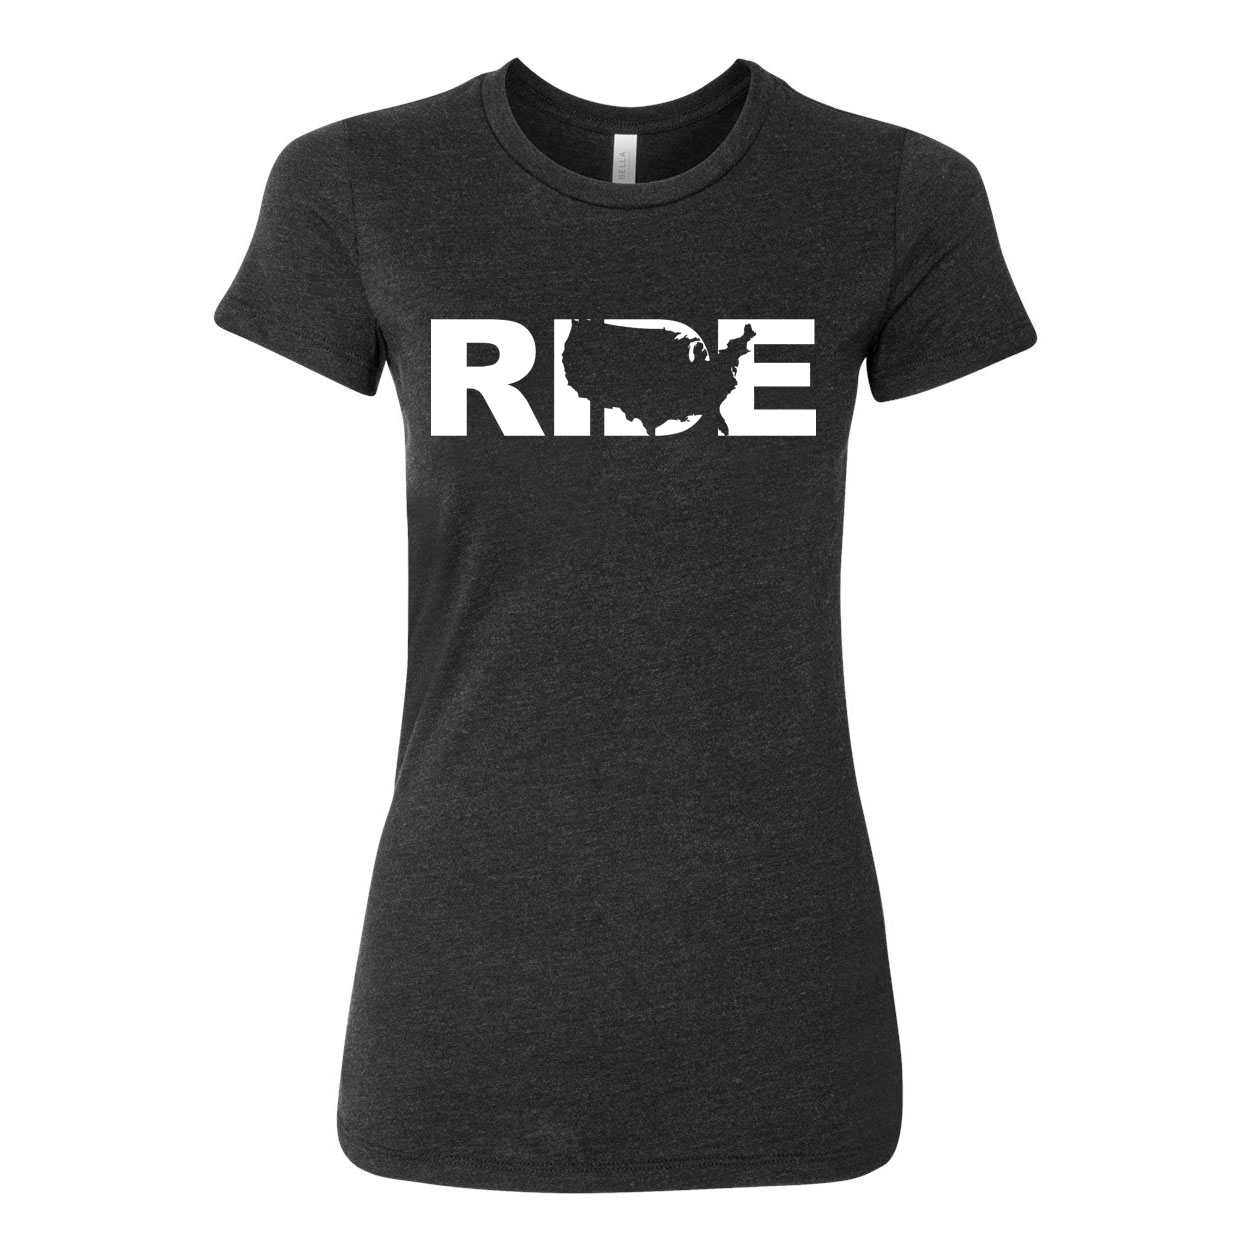 Ride United States Classic Women's Fitted Tri-Blend T-Shirt Dark Heather Gray (White Logo)